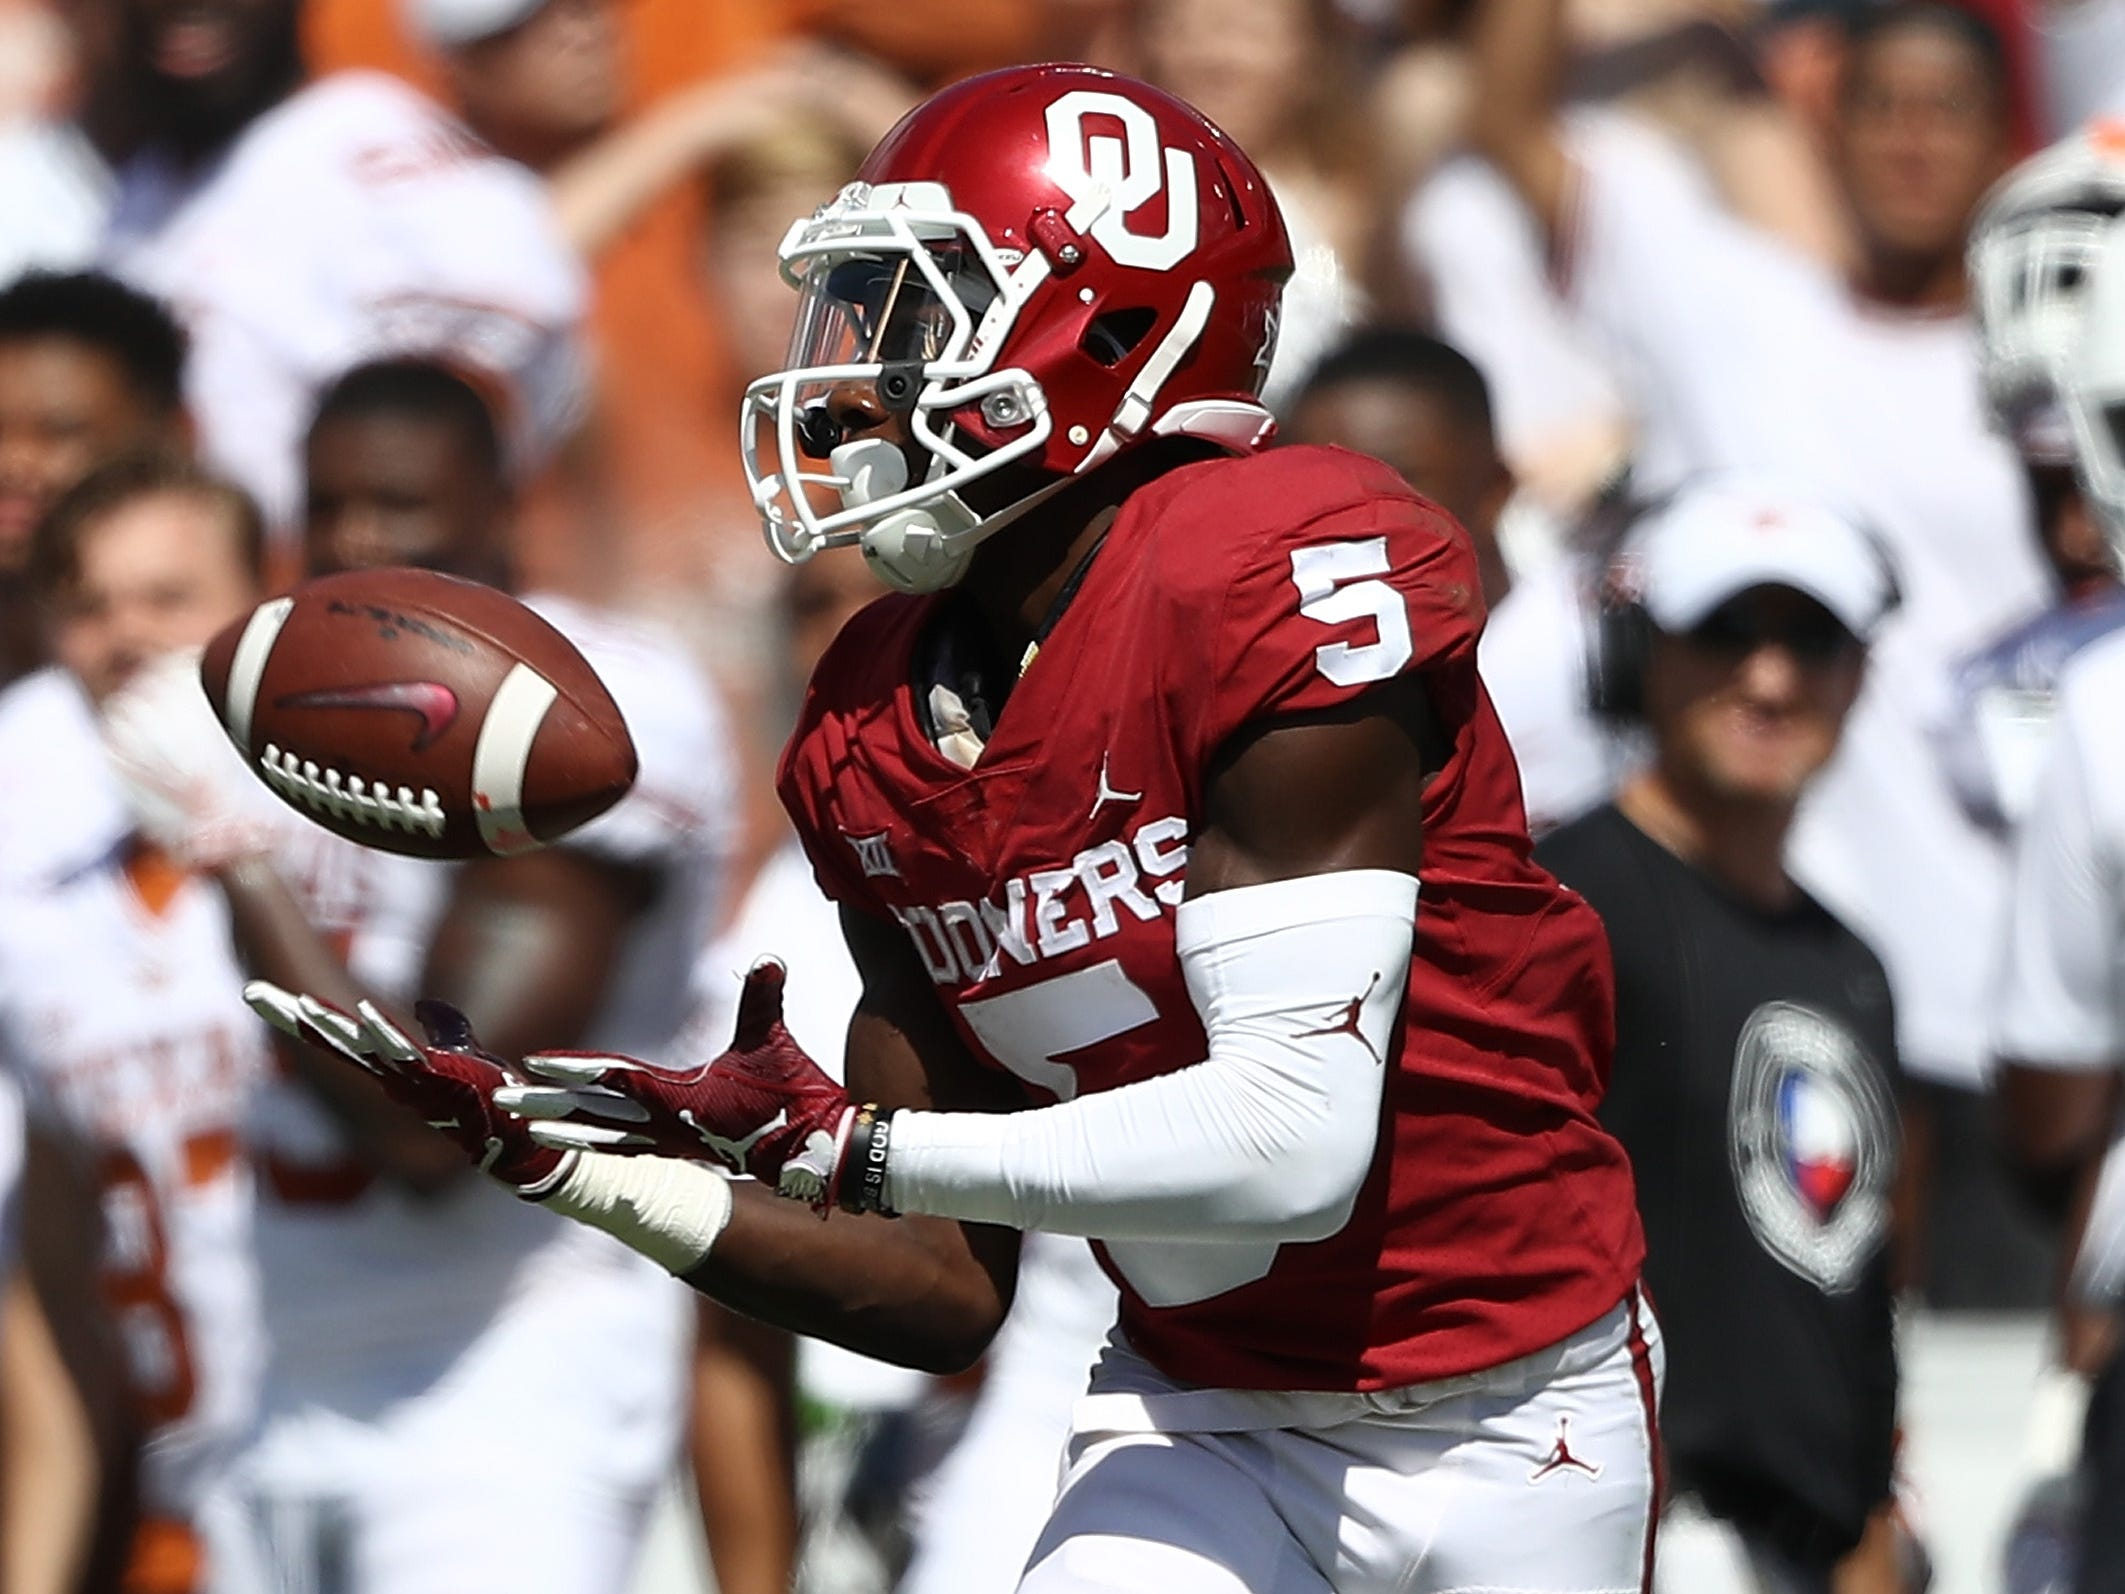 21. Marquise Brown, WR, Oklahoma: One of the most exciting playmakers in college football, Brown is a threat to score every time he touches the ball. The fleet-footed receiver has the long speed to take the top off a defense and the quickness to make tacklers miss in the open field.